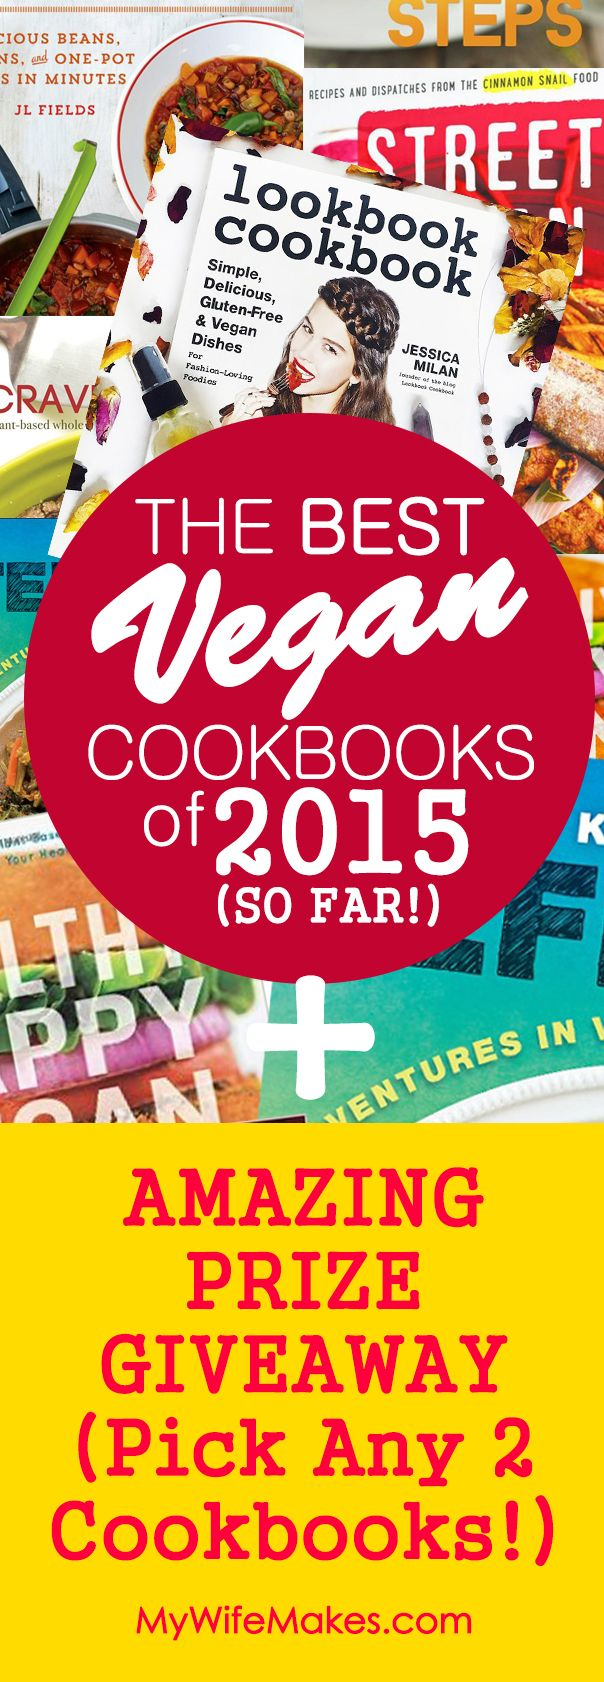 Our review of 8 of the BEST Vegan Cookbooks of 2015.